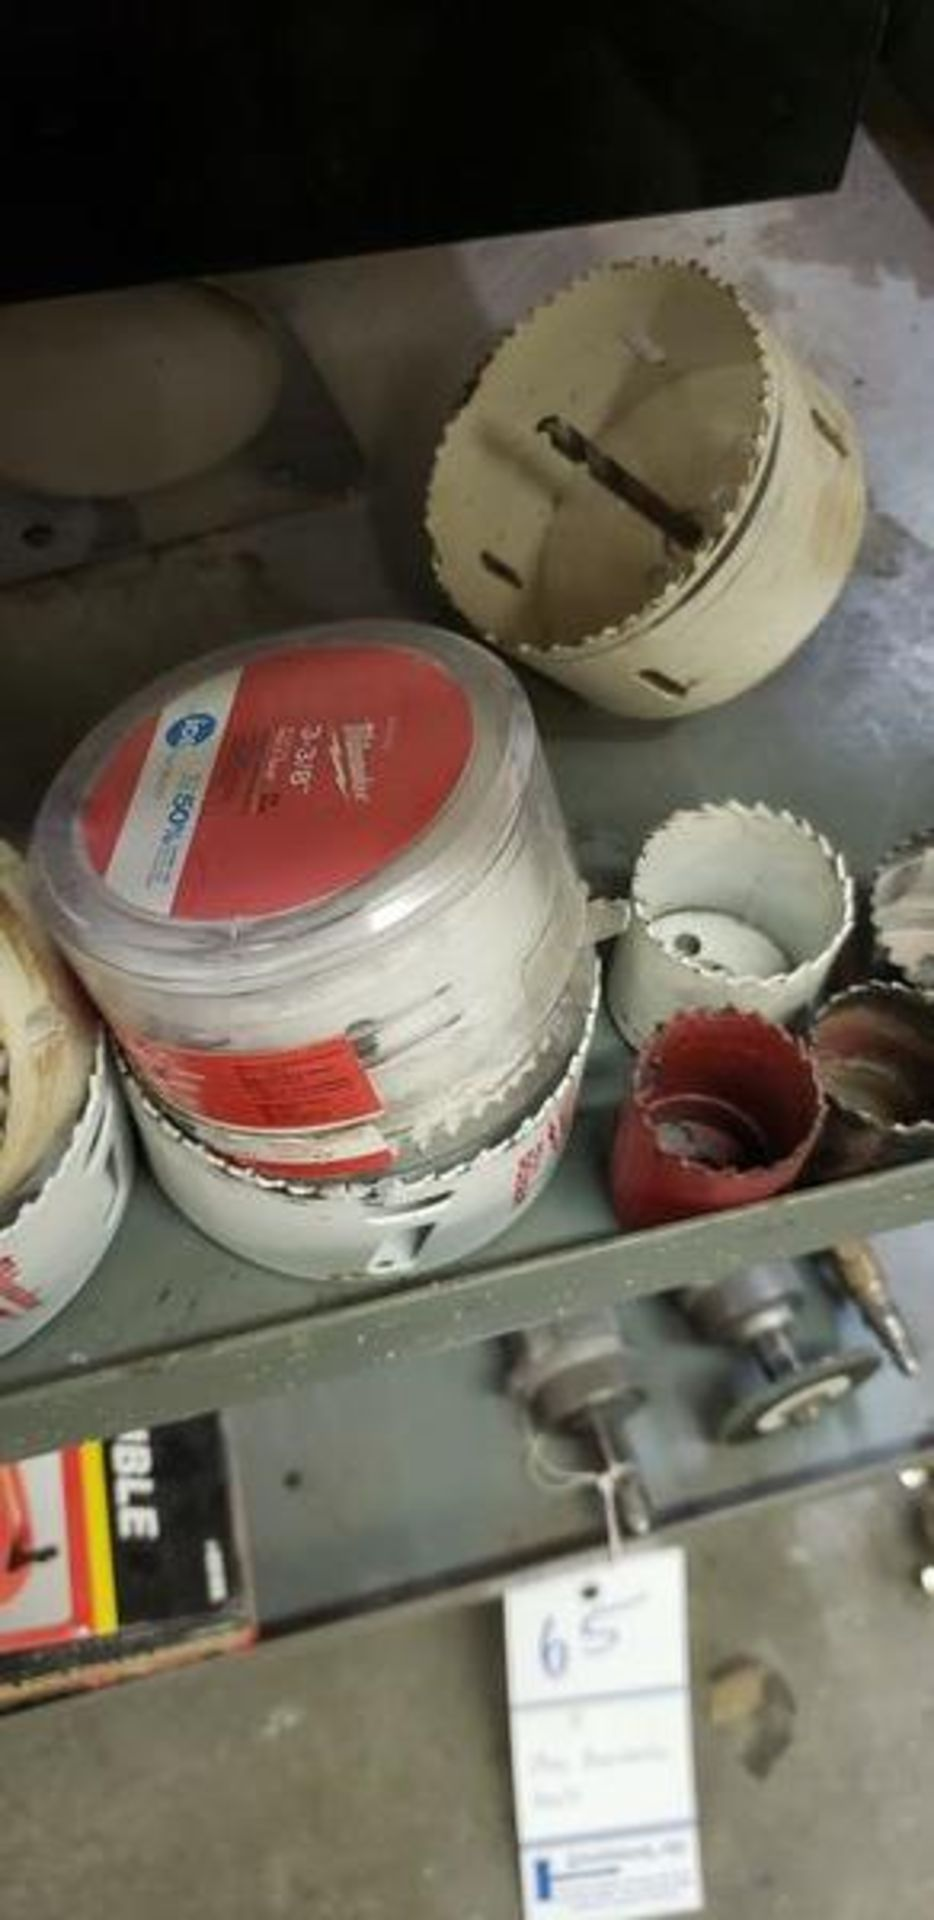 LOT OF HOLE SAWS - Image 4 of 5